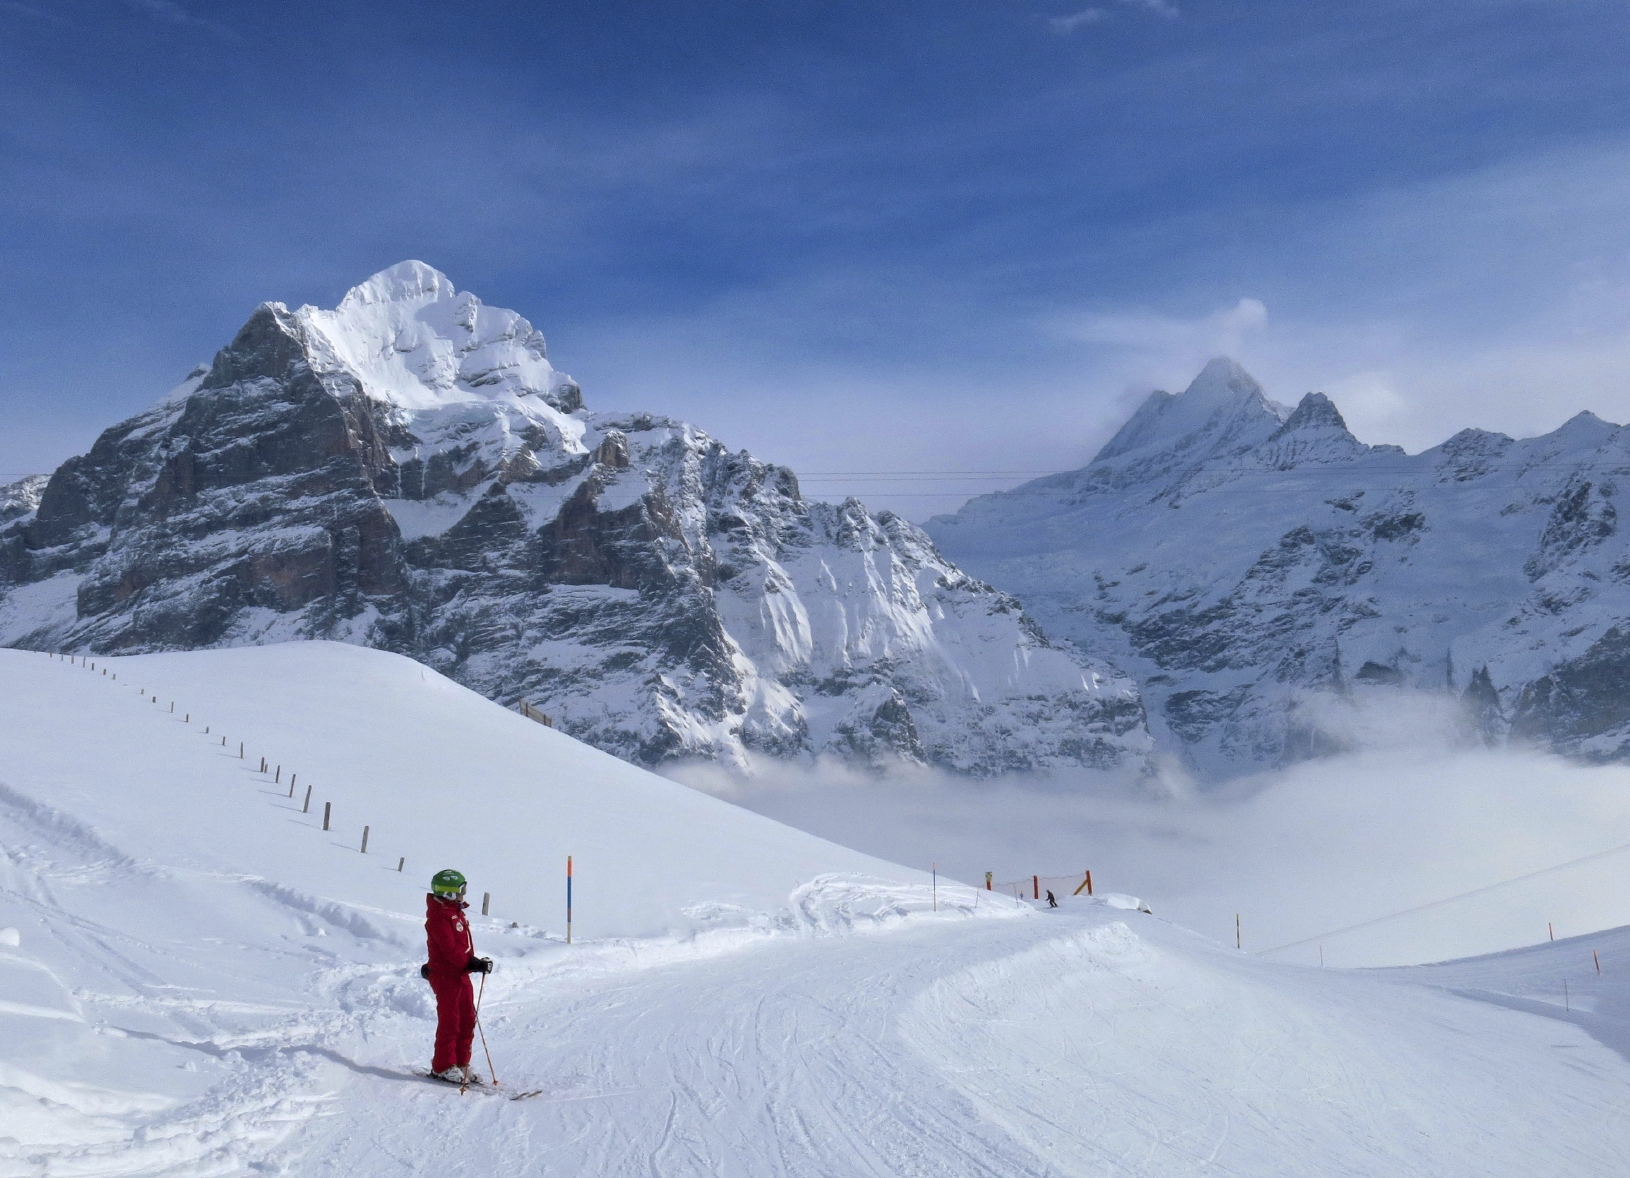 Laura Bomio, my instructor, surveys a blue diamond run at Grindelwald First.